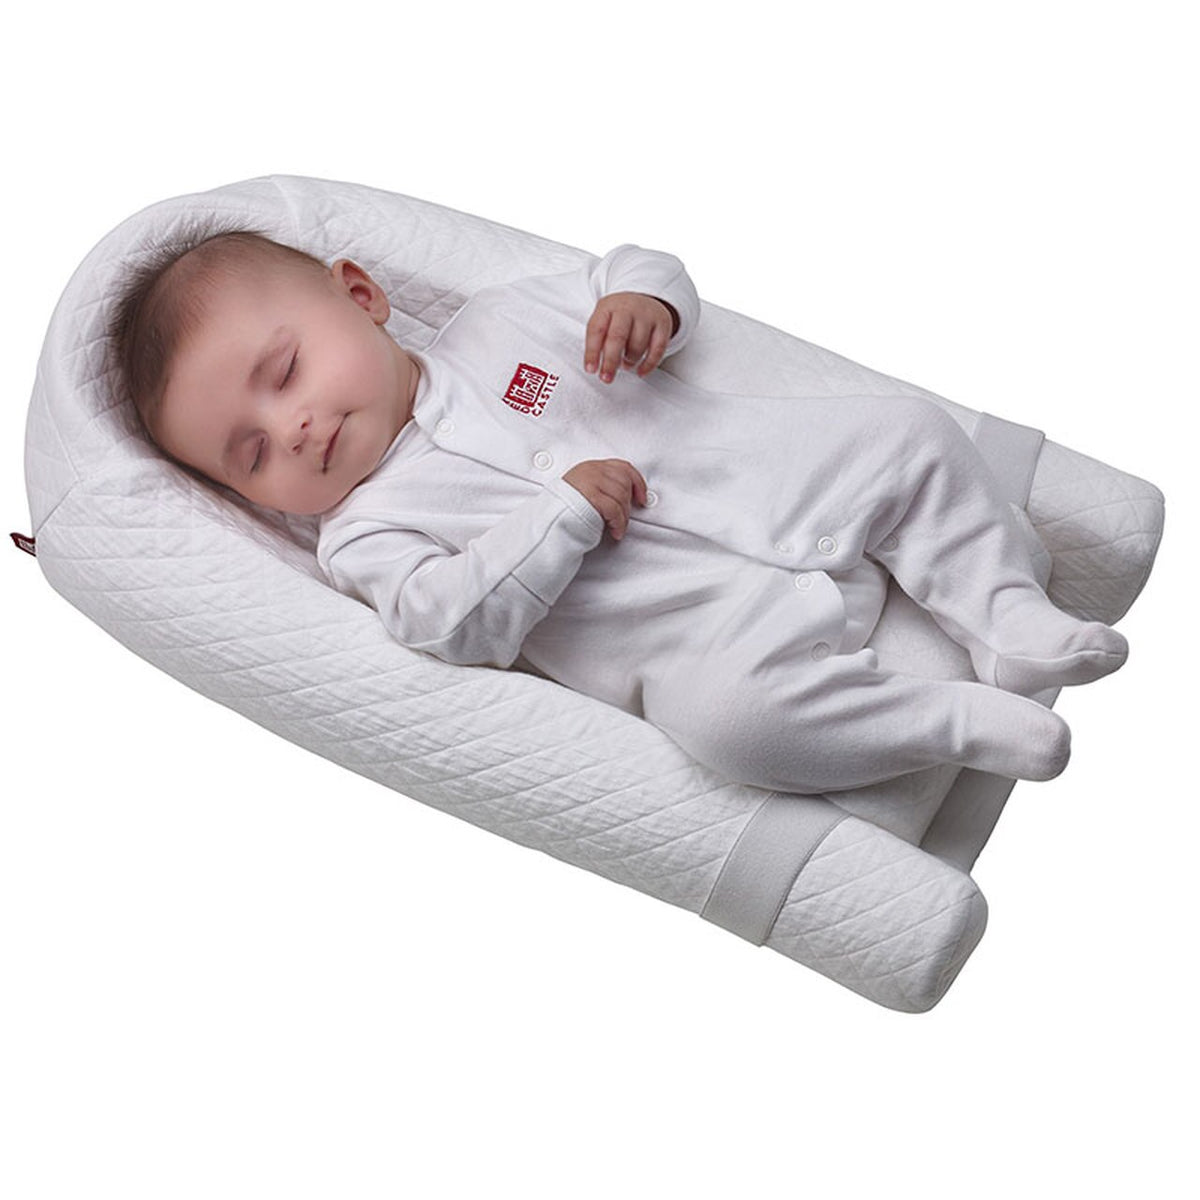 Redcastle Ergonomic Sleep Positioner - White - Happy Baby